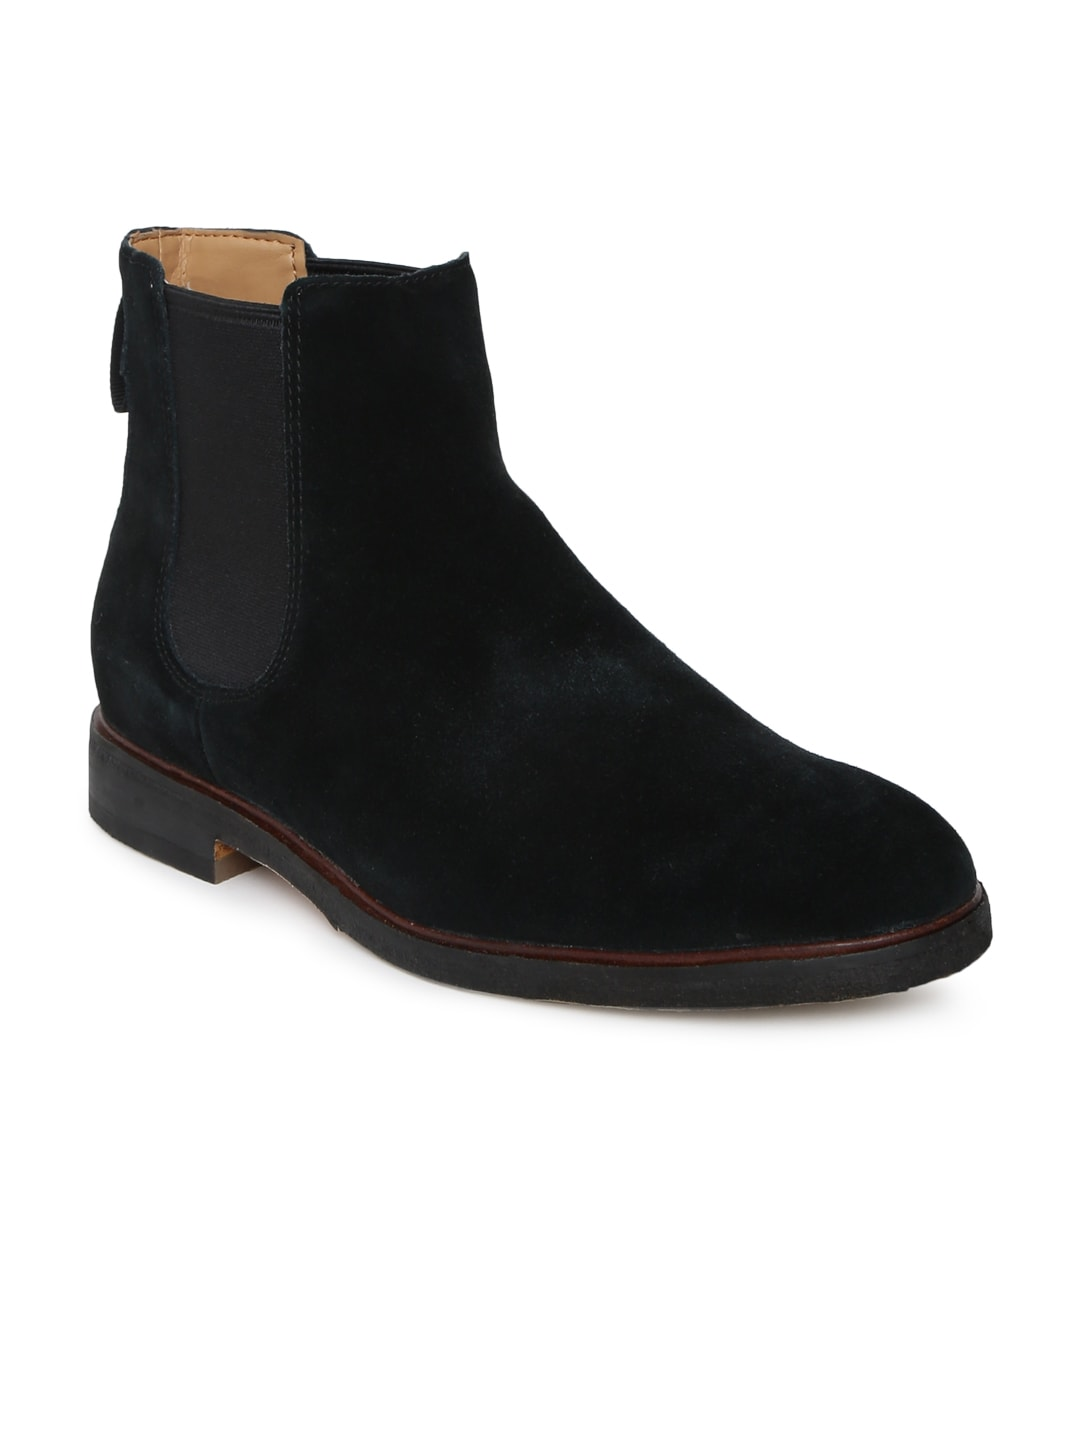 1ed86f2b0245 CLARKS - Exclusive Clarks Shoes Online Store in India - Myntra